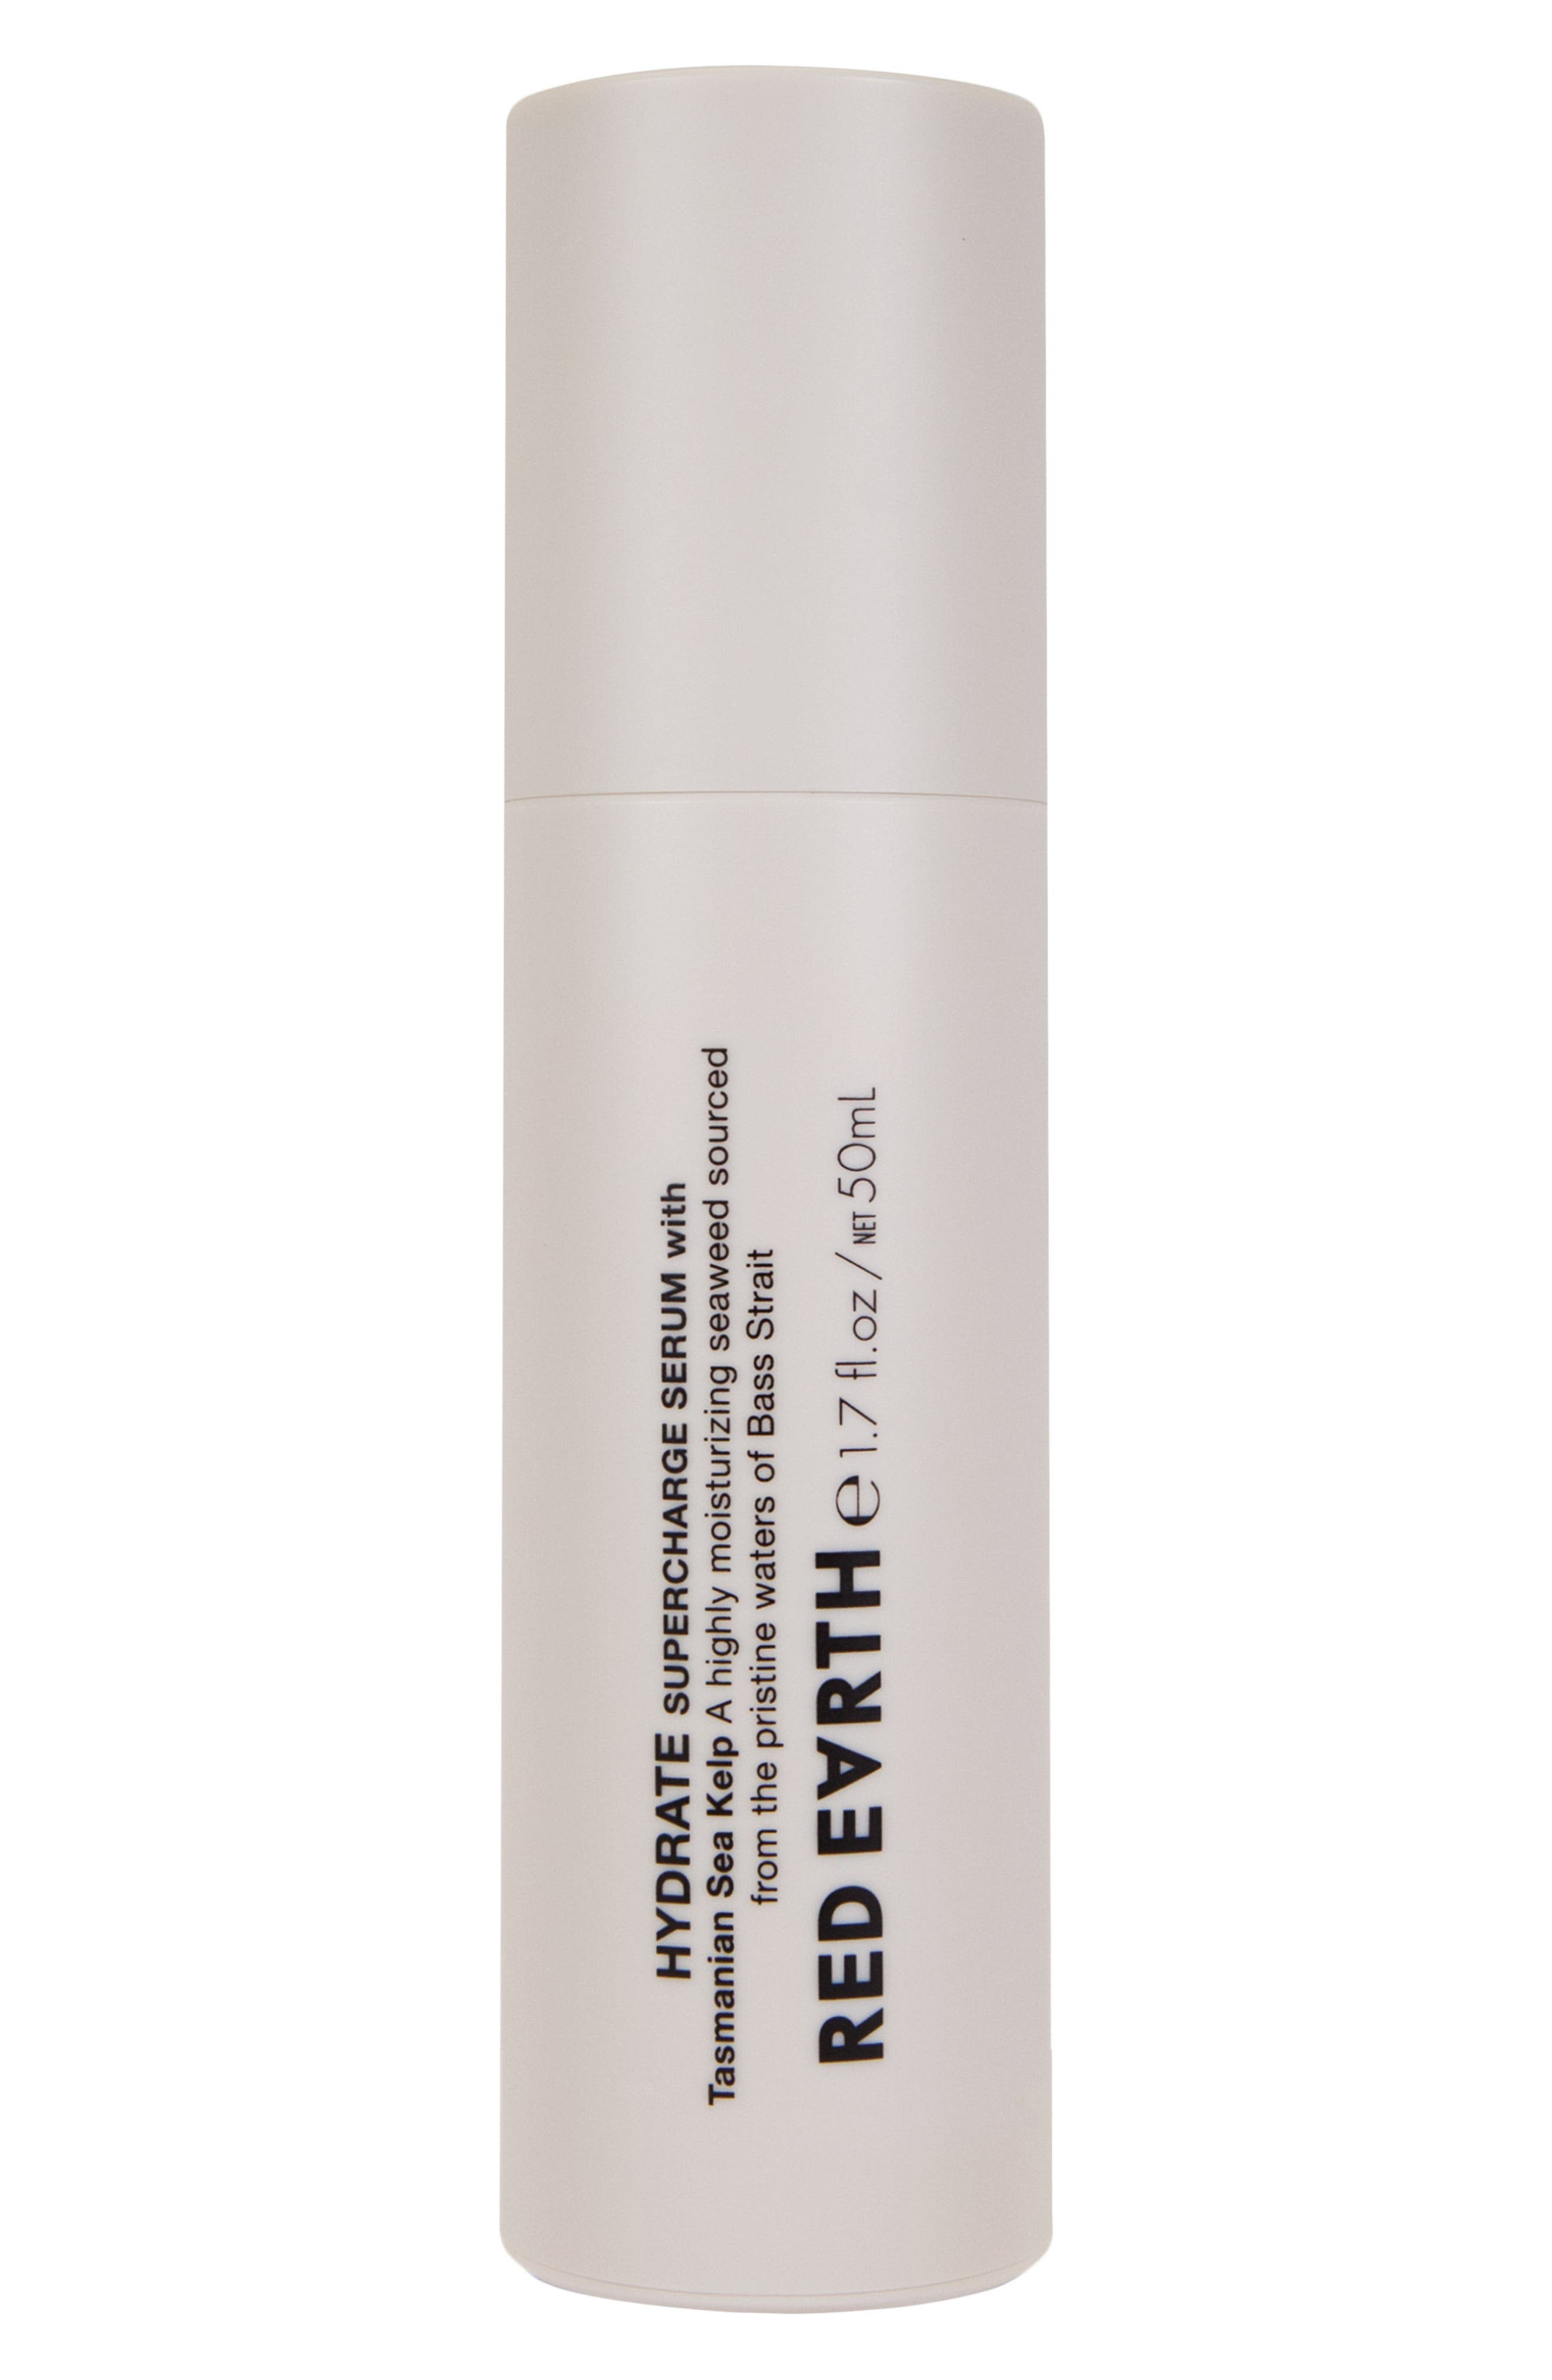 Hydrate Supercharge Serum,                             Main thumbnail 1, color,                             No Color